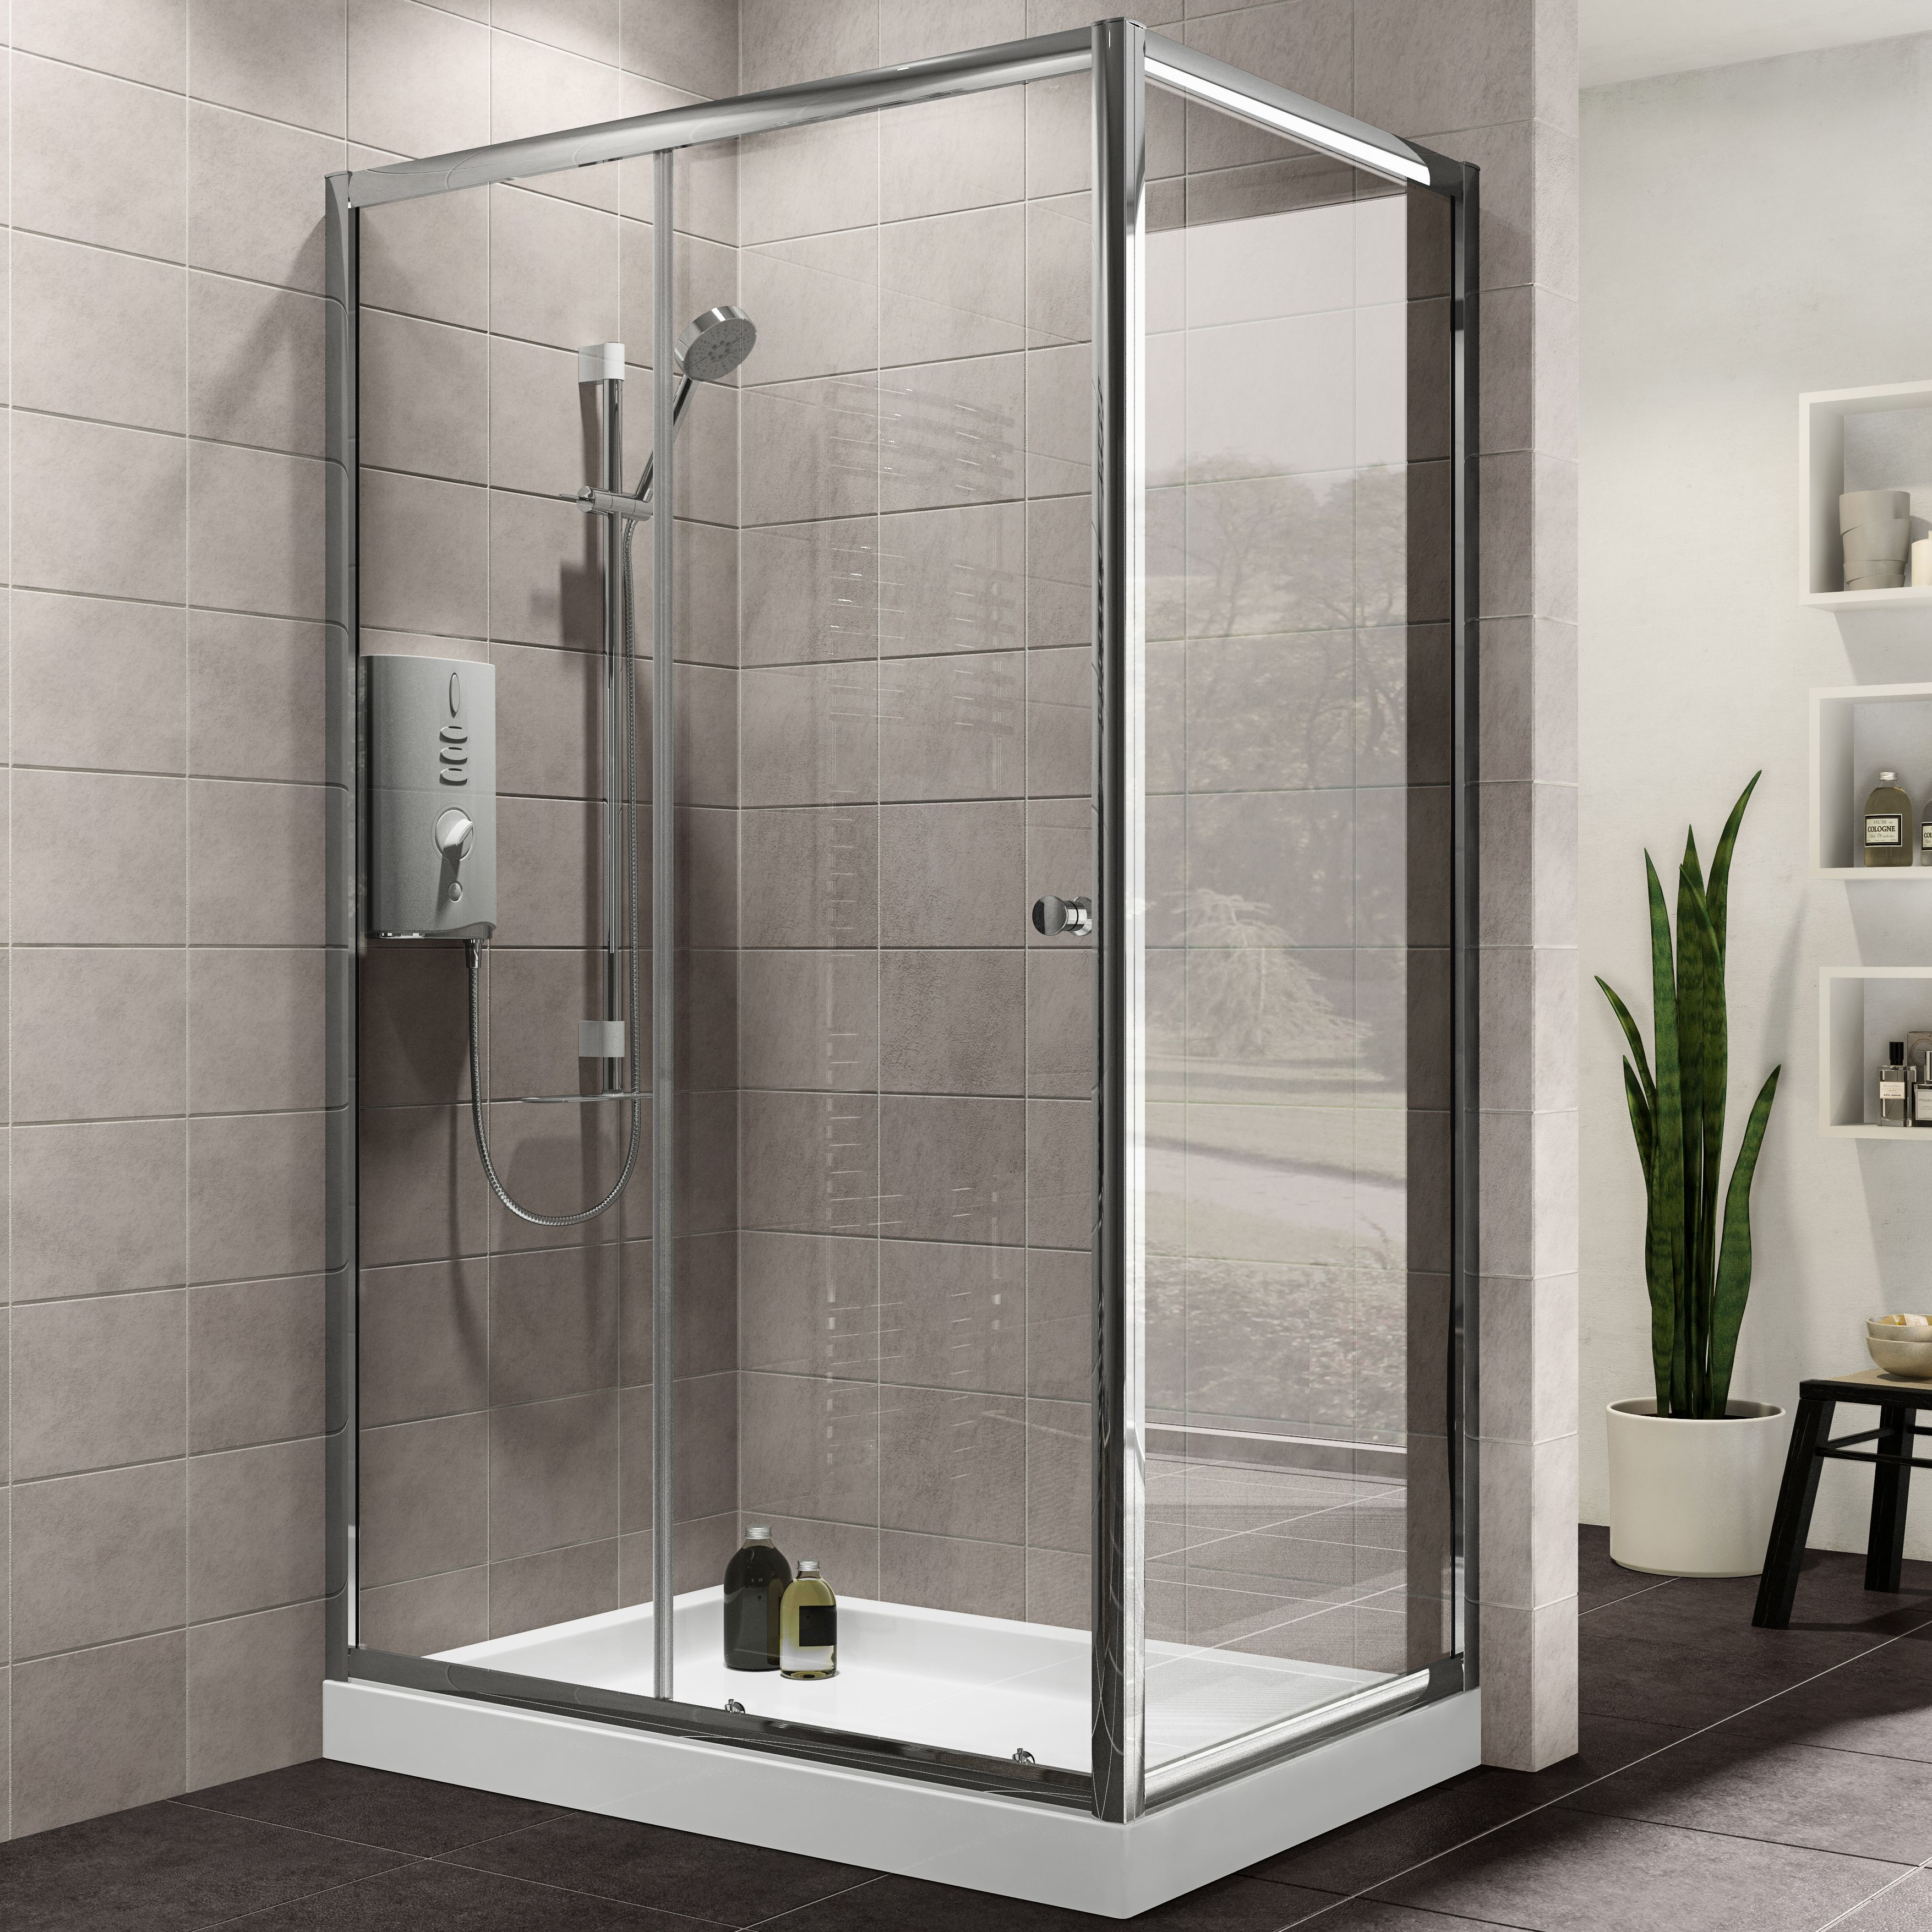 Omega Kitchen Cabinets Plumbsure Rectangular Shower Enclosure With Single Sliding